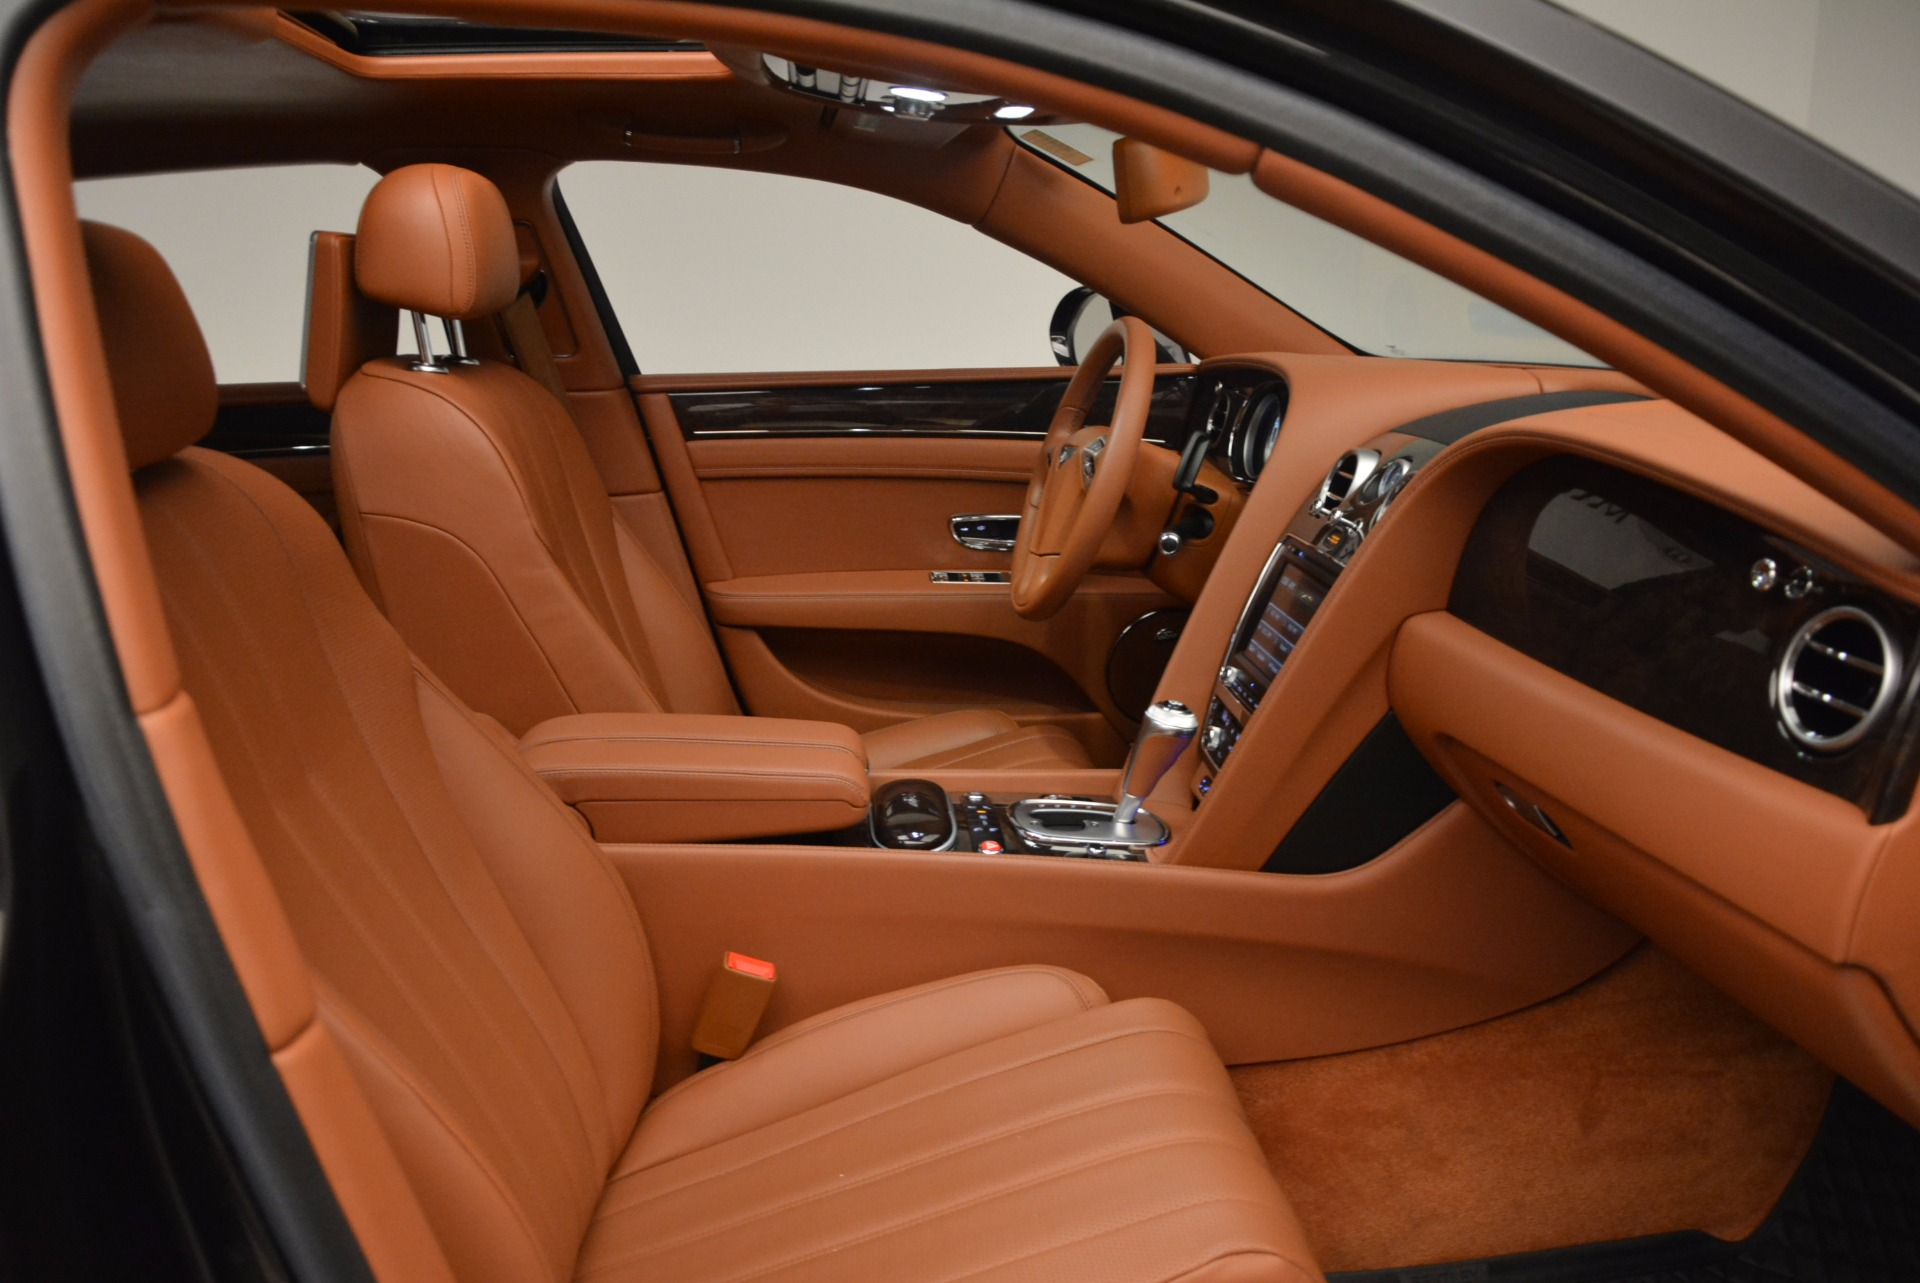 Used 2014 Bentley Flying Spur W12 For Sale In Westport, CT 1598_p39